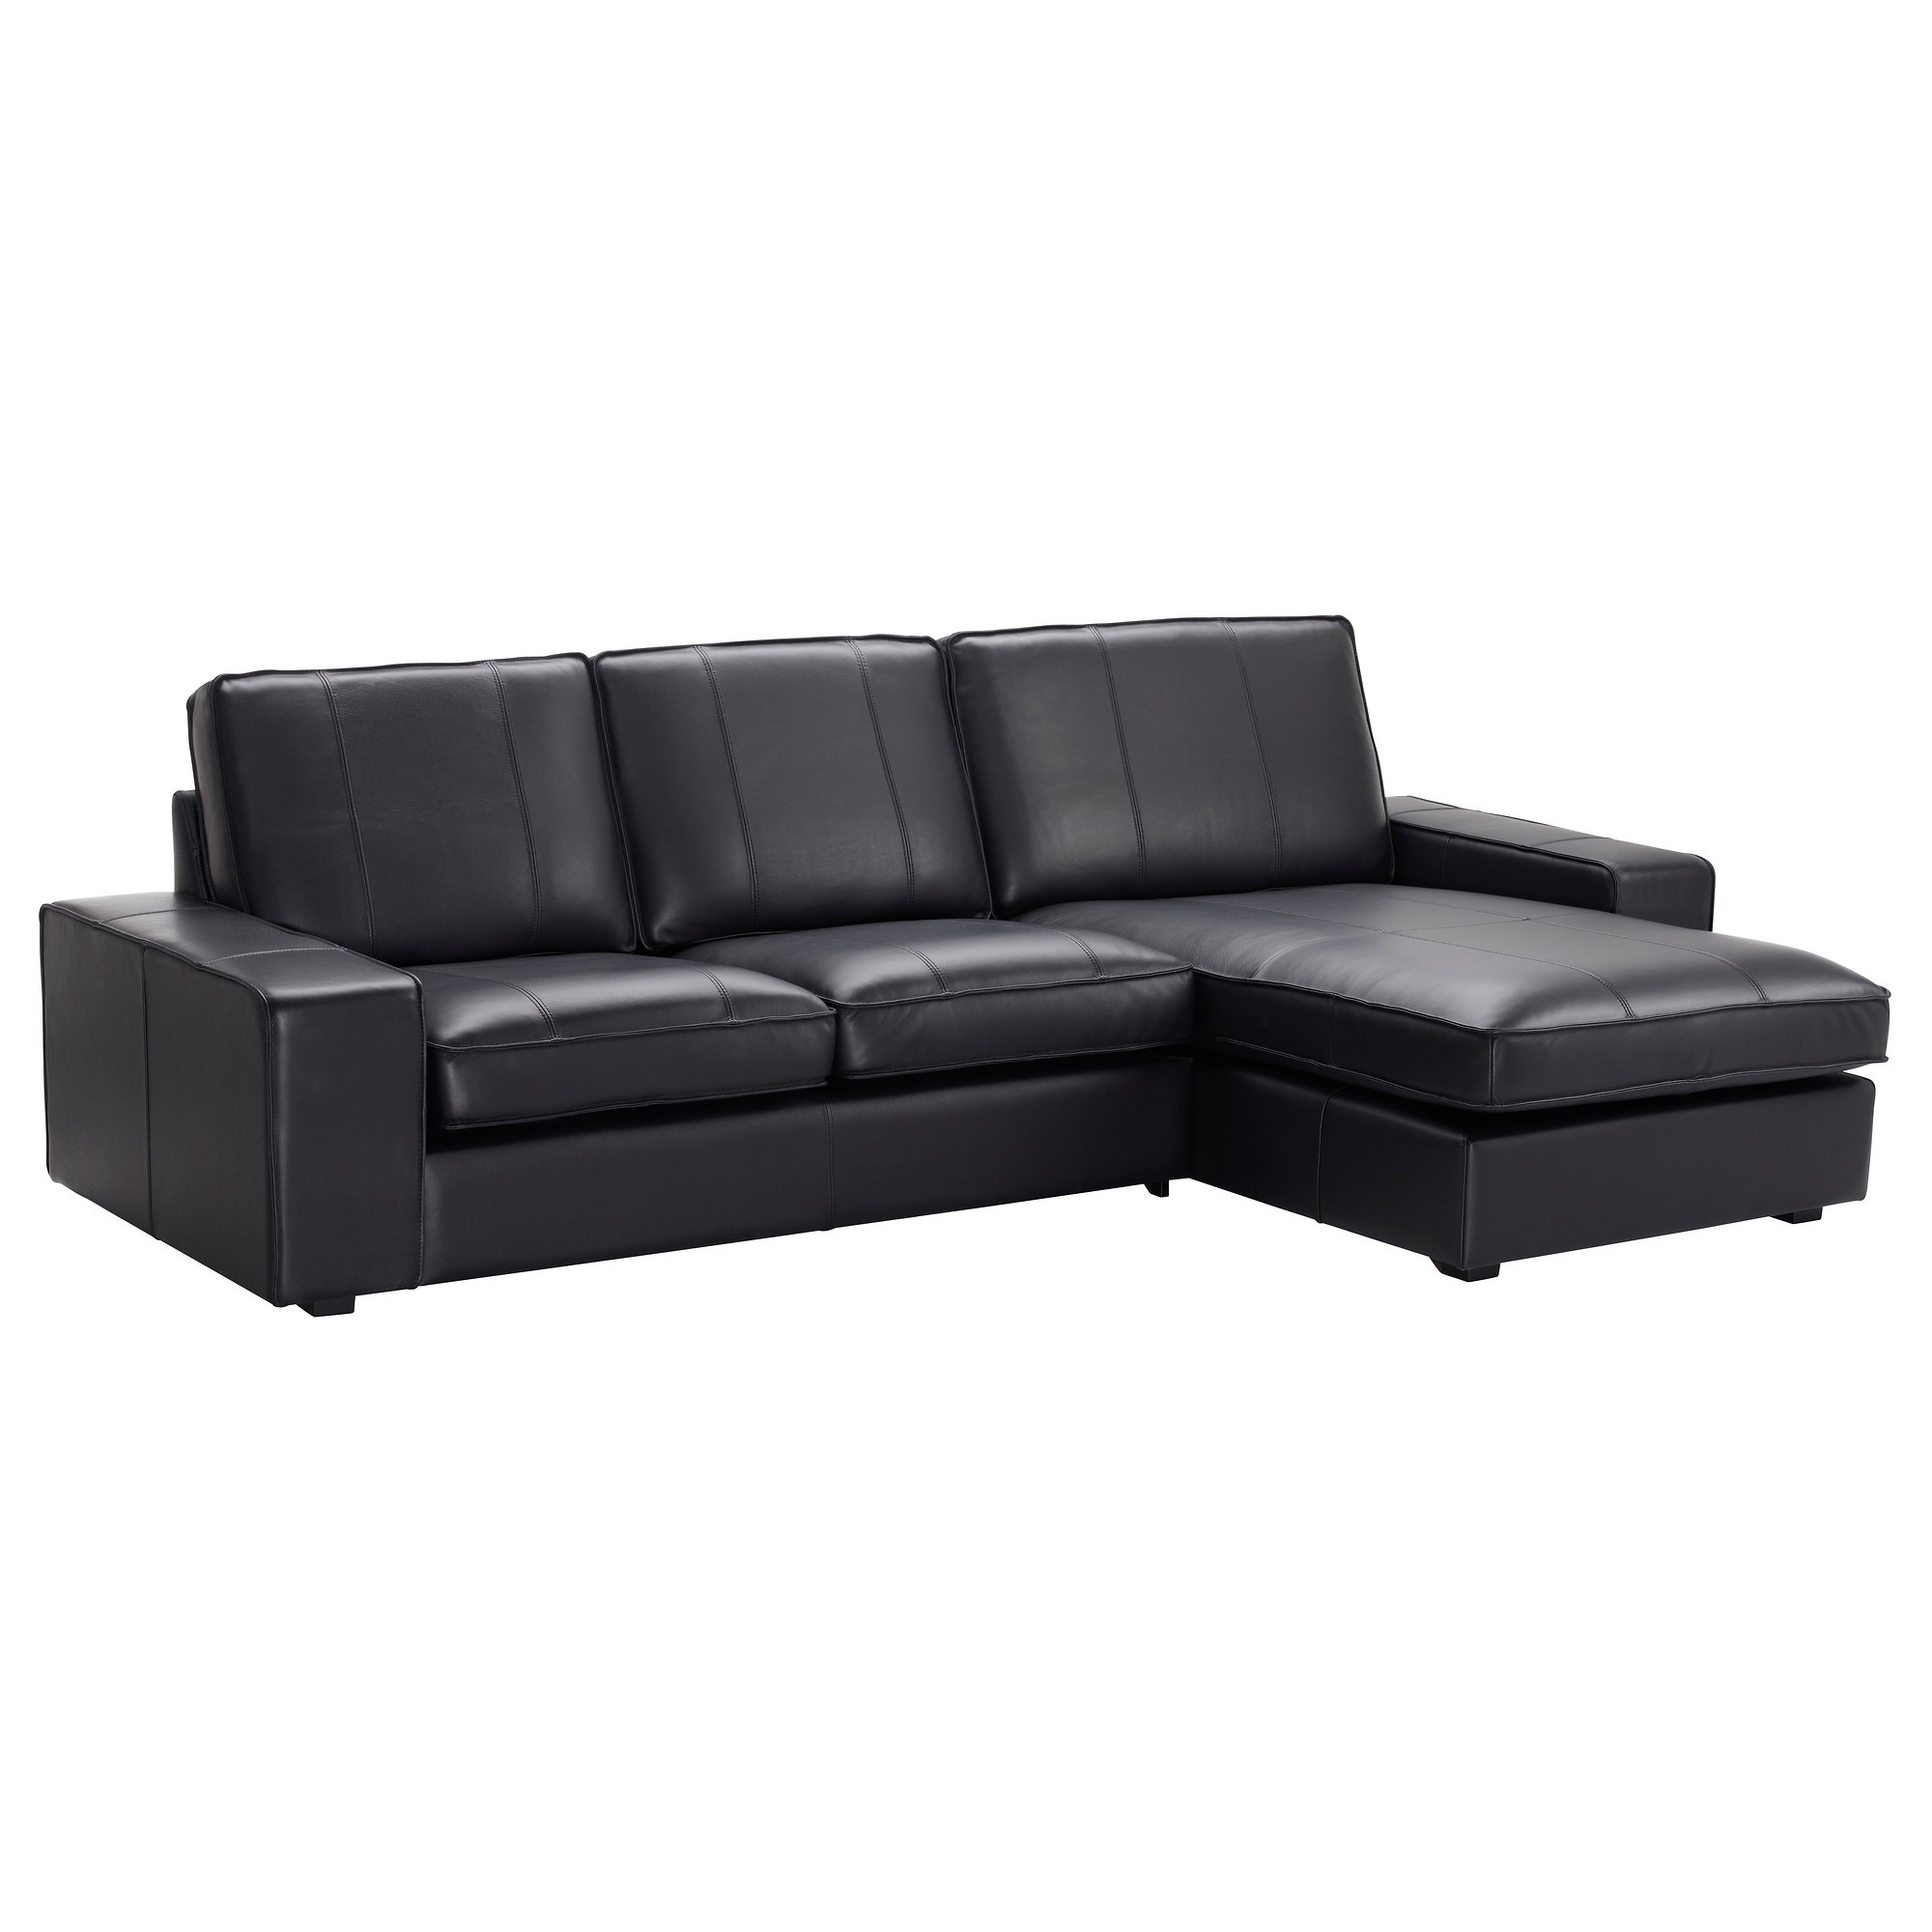 Canape cuir ikea 2 places canap id es de d coration for Canape cuir ikea convertible